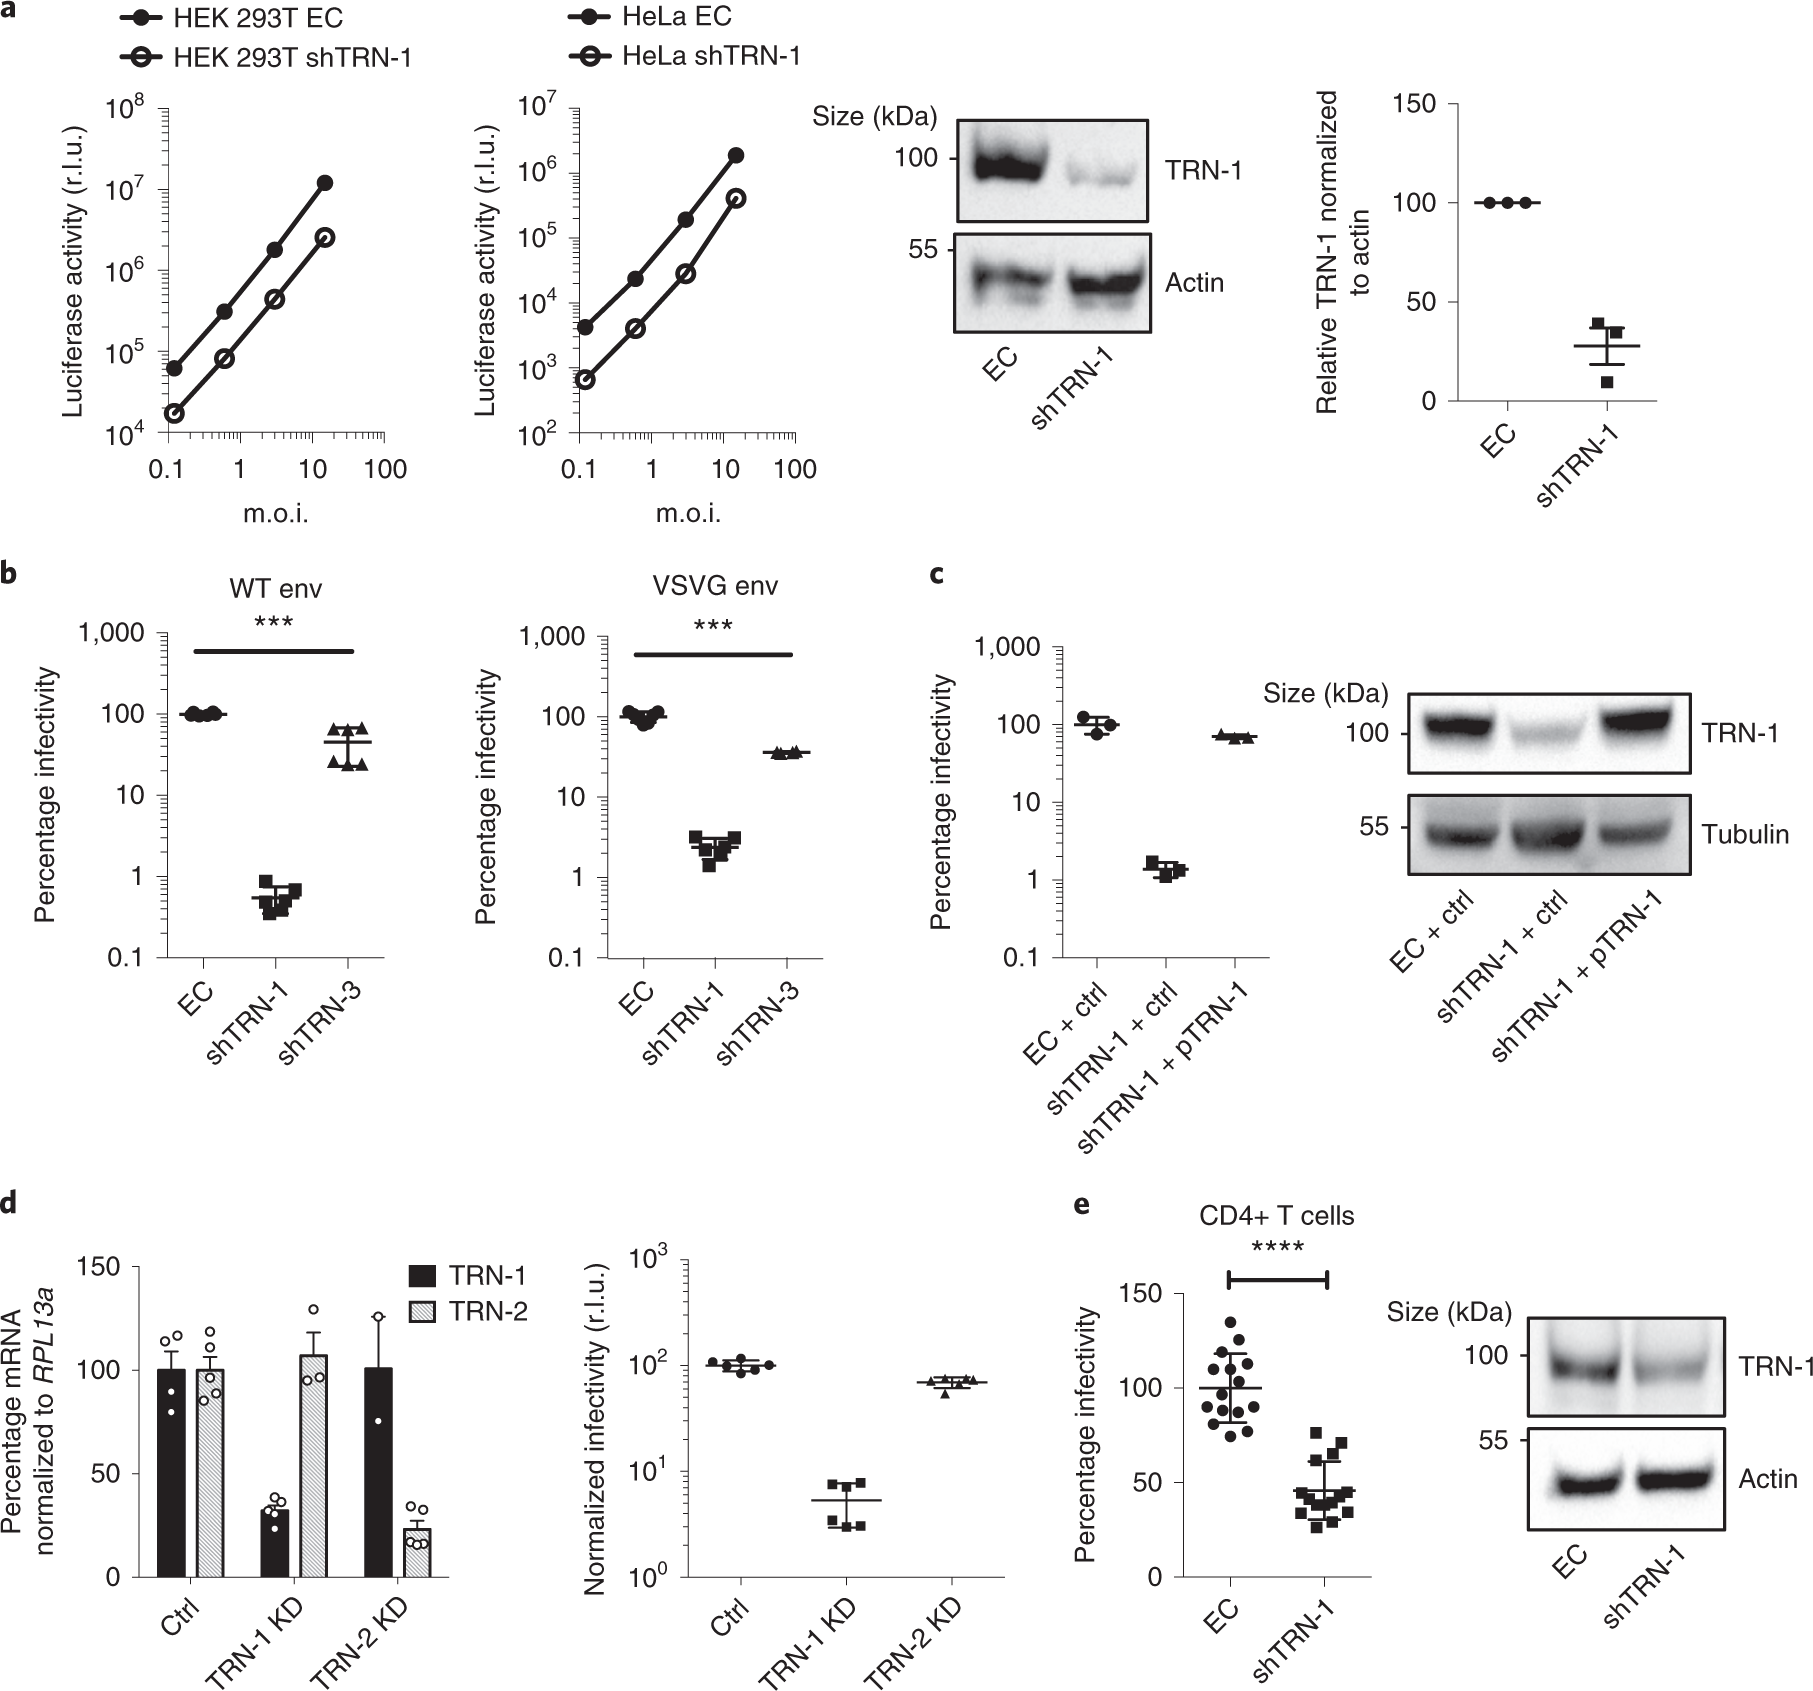 Transportin-1 binds to the HIV-1 capsid via a nuclear localization sig